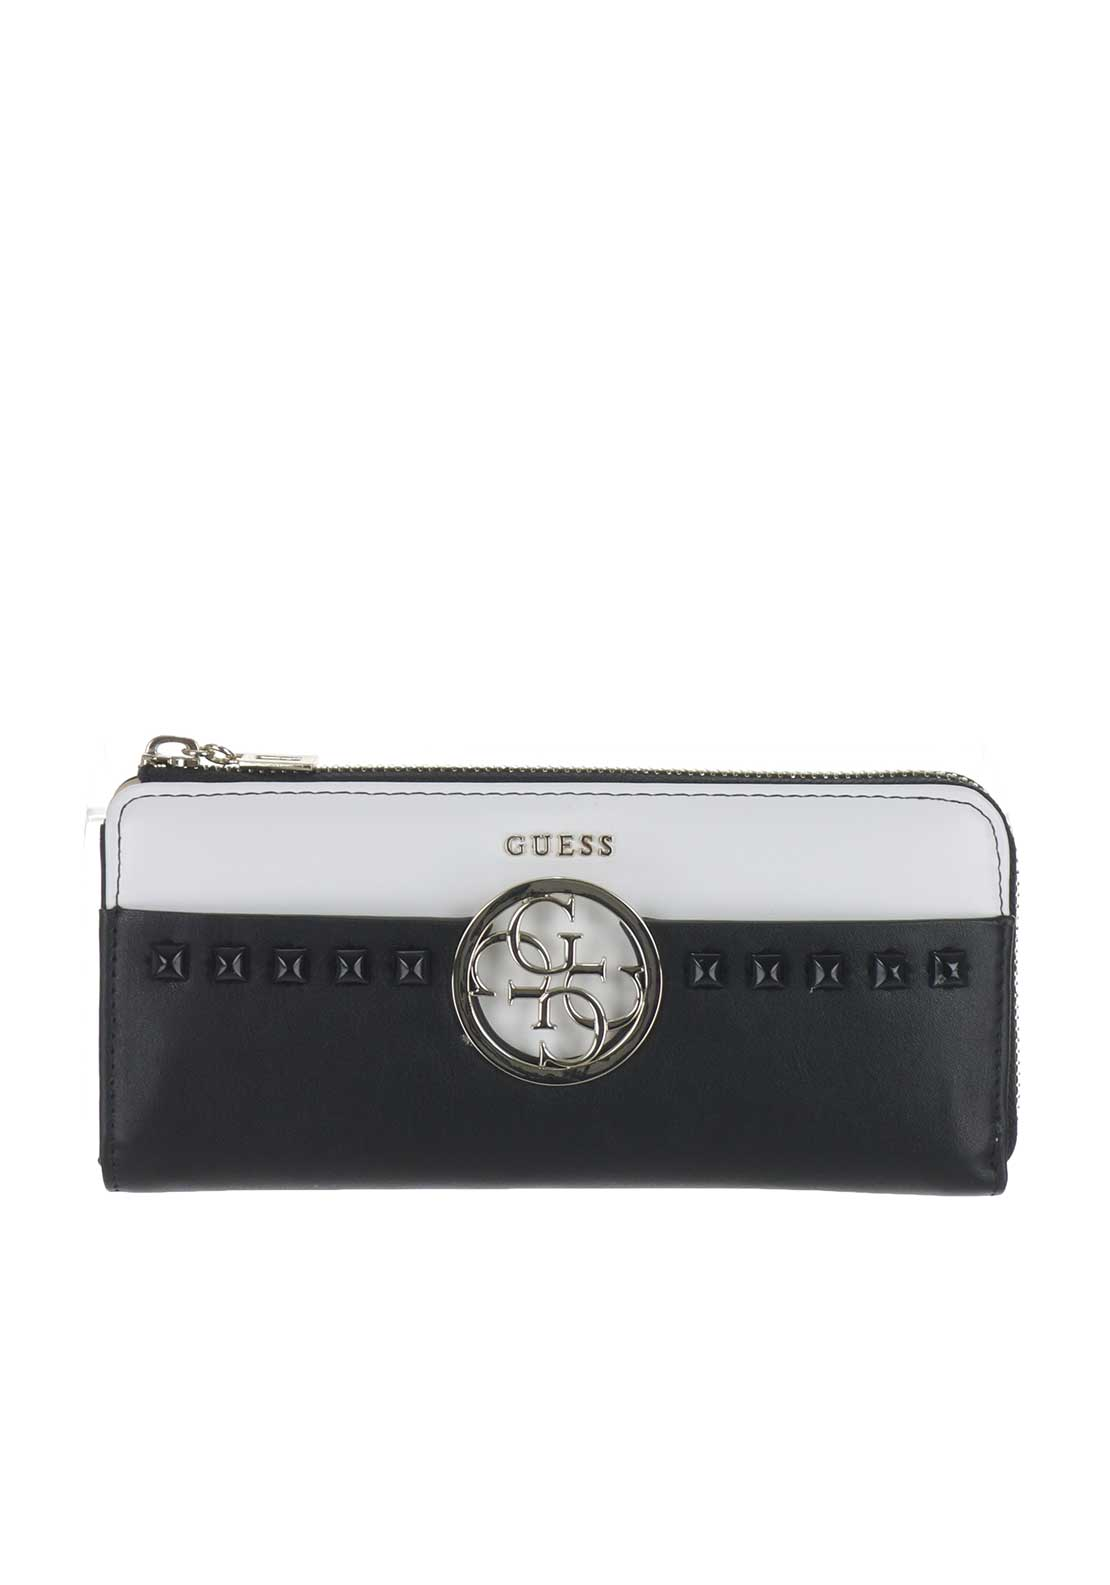 Guess Devyn Slim Zip Stud Wallet, Black & White